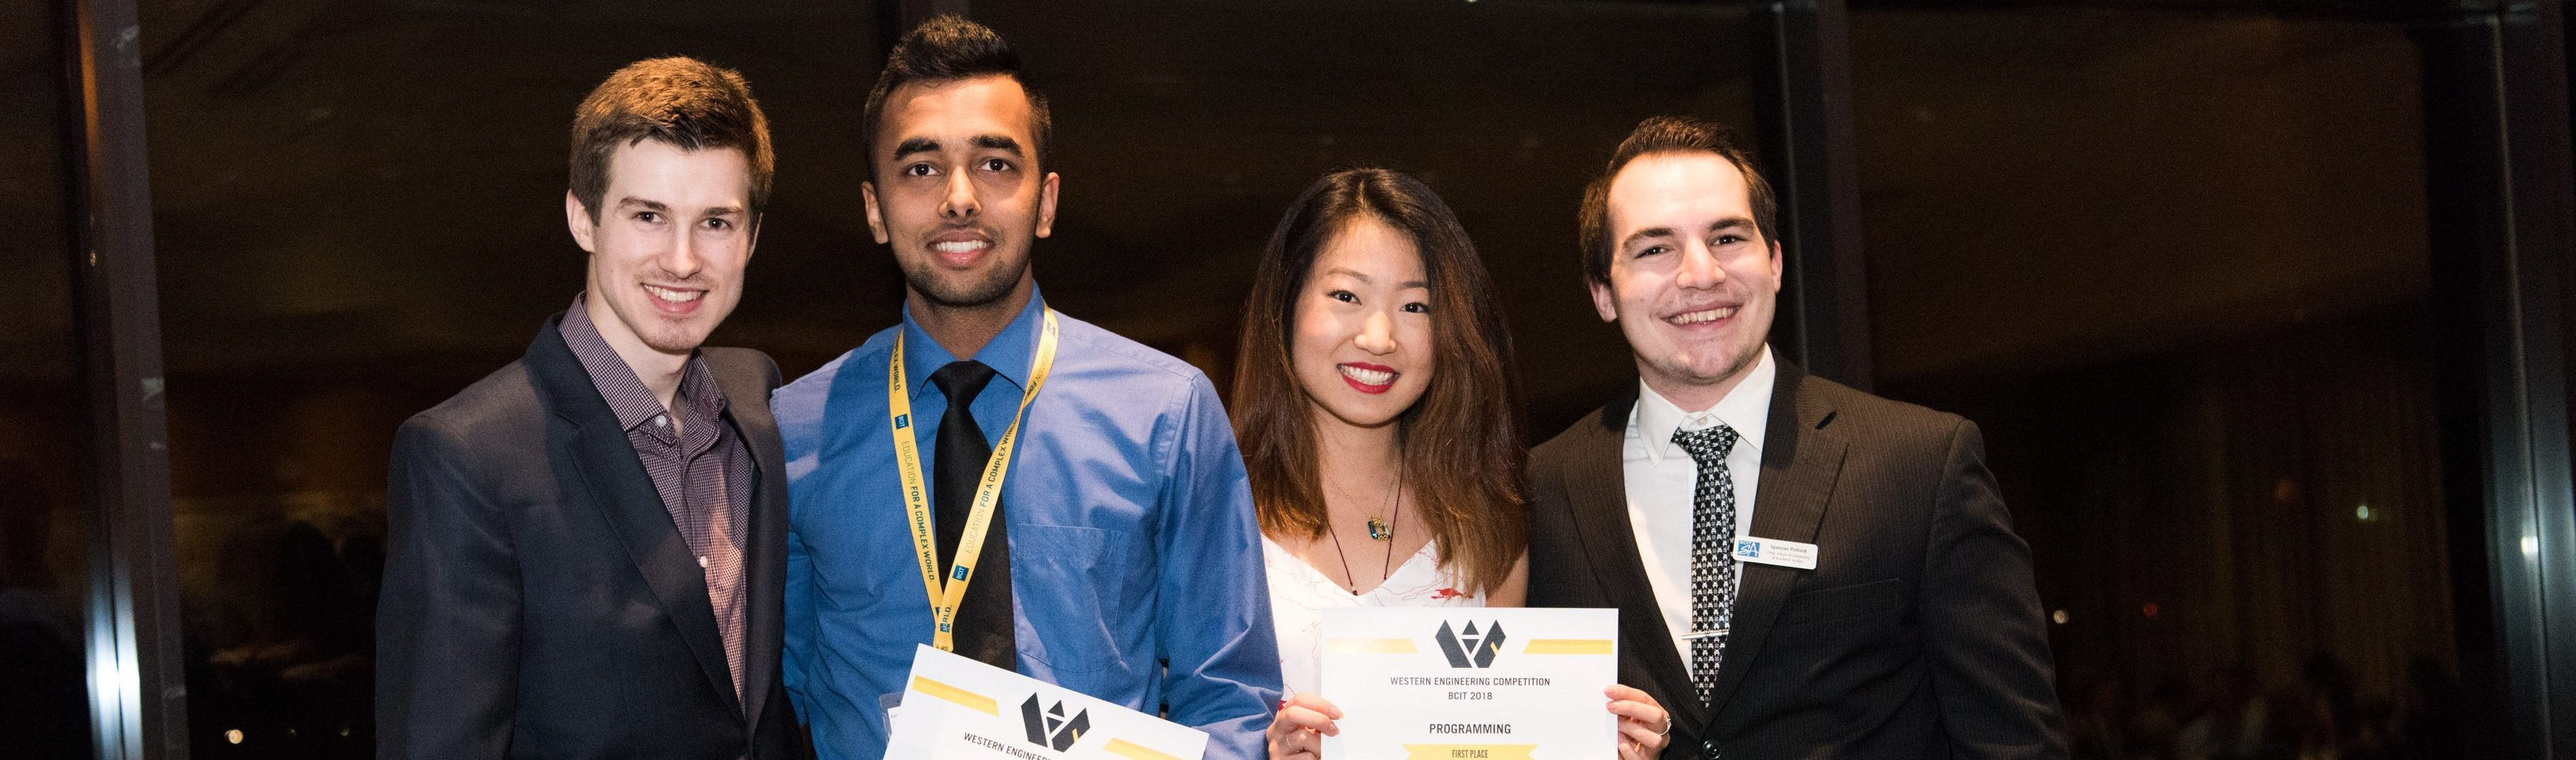 L - R:  Anthony Ydenberg (WEC2018 Chair), Navjashan Singh, Jenny Yang, Spencer Pollock (Director of Programming)